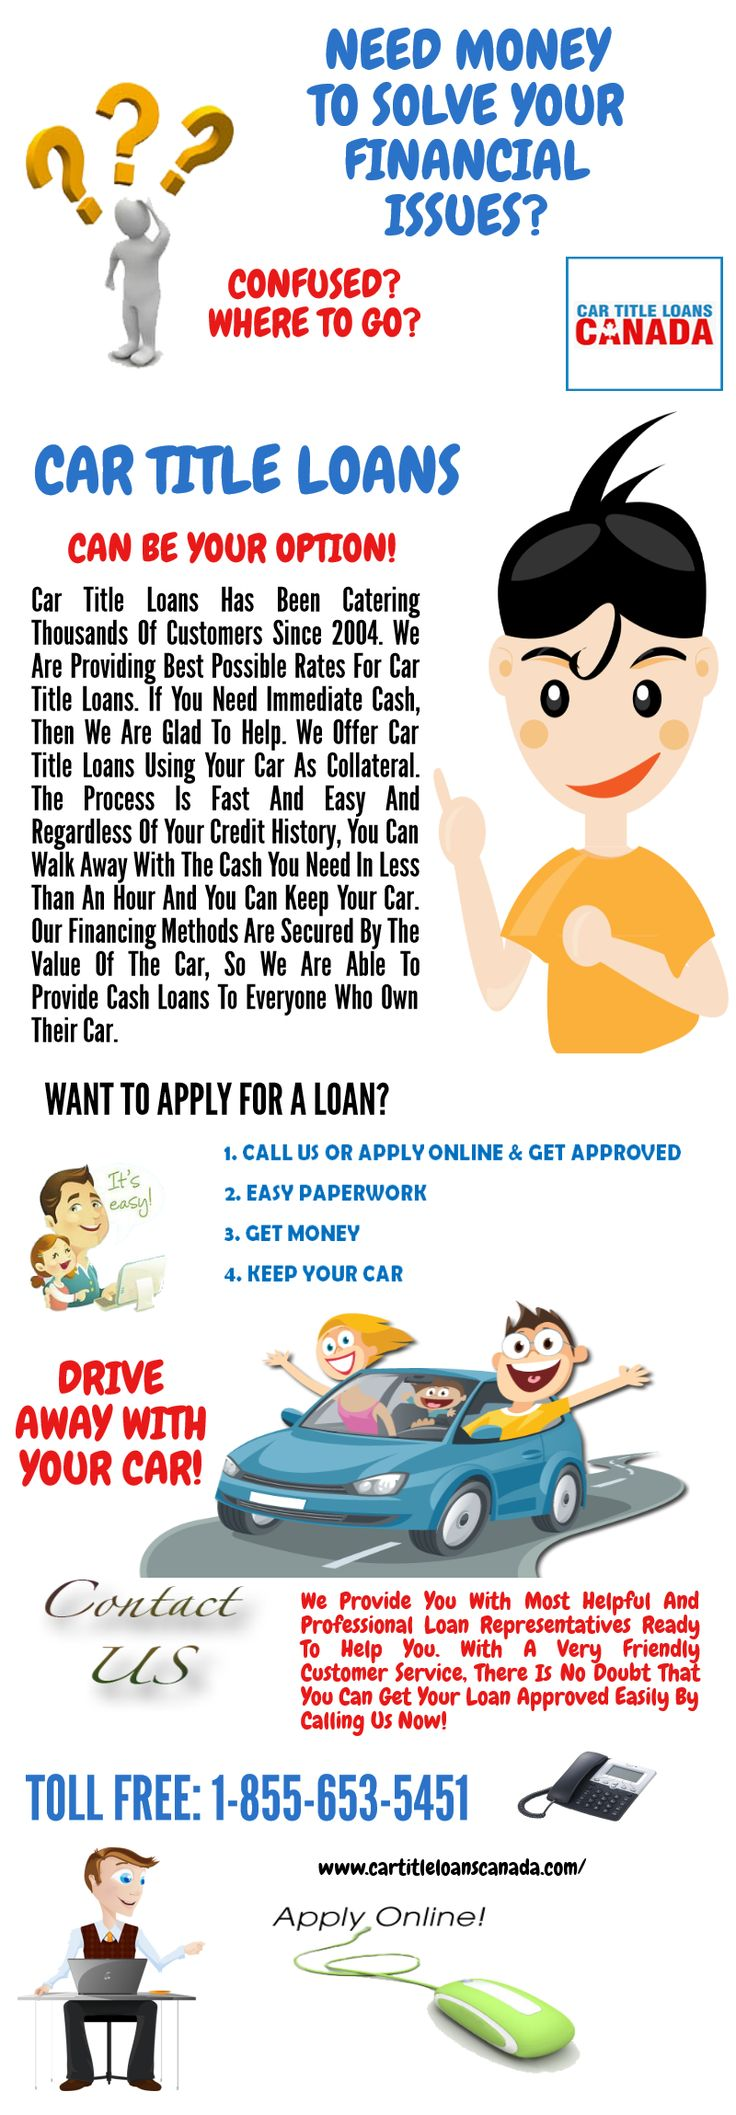 Have you ever experienced being rejected for a traditional bank loan due to your bad credit score? Apply for a loan with car title loans Canada. You will not have to go through a credit check to determine your credit history and credit score. Toll Free: 1-855-653-5451 or Visit: www.cartitleloanscanada.com/